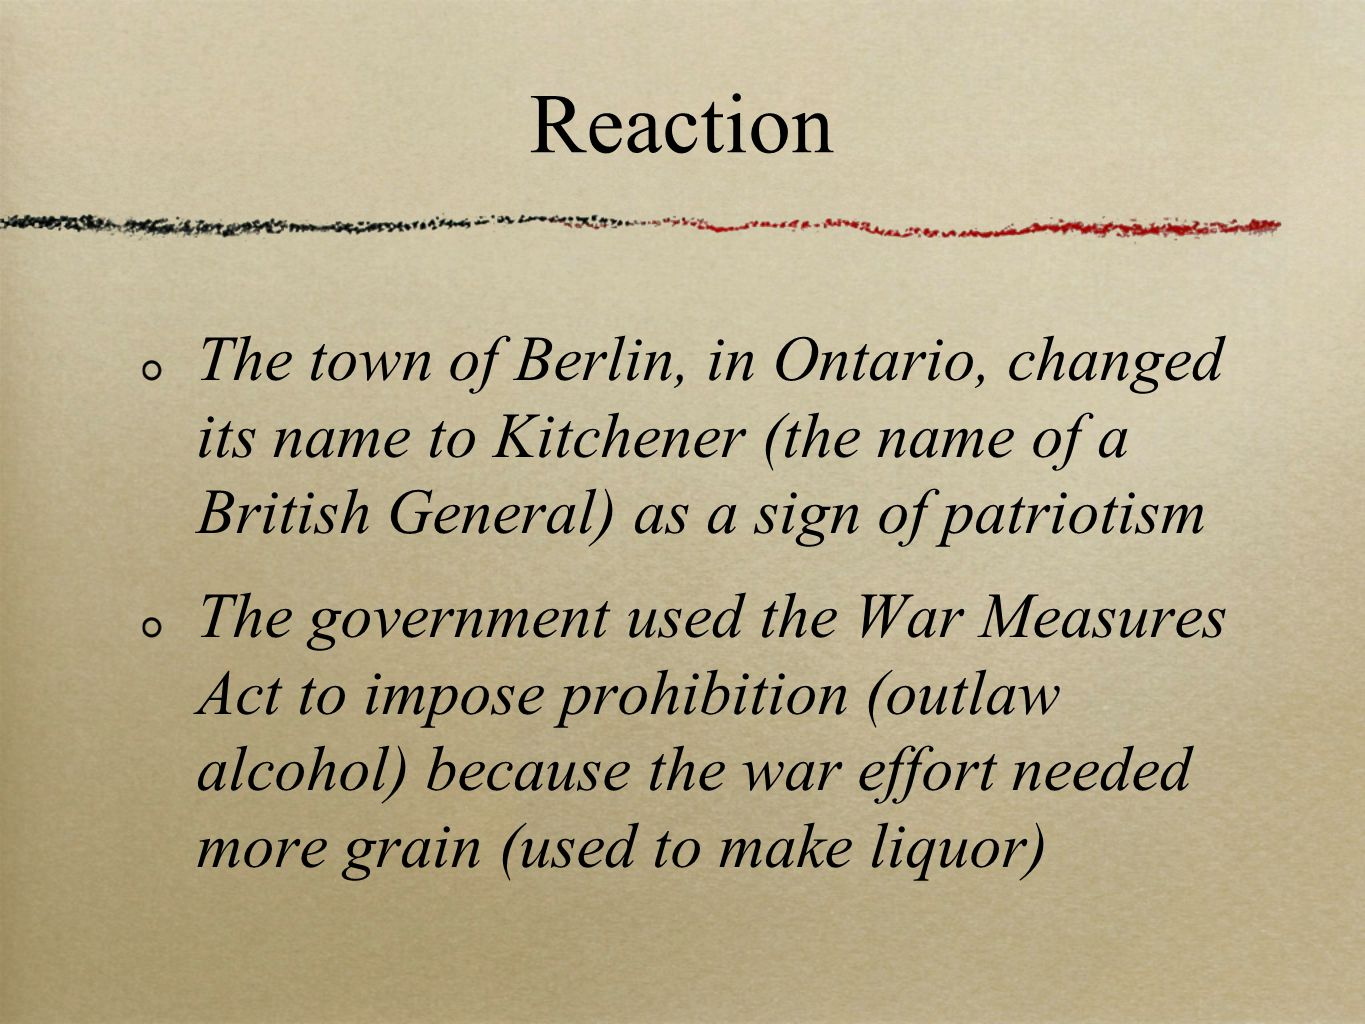 Reaction The town of Berlin, in Ontario, changed its name to Kitchener (the name of a British General) as a sign of patriotism The government used the War Measures Act to impose prohibition (outlaw alcohol) because the war effort needed more grain (used to make liquor)